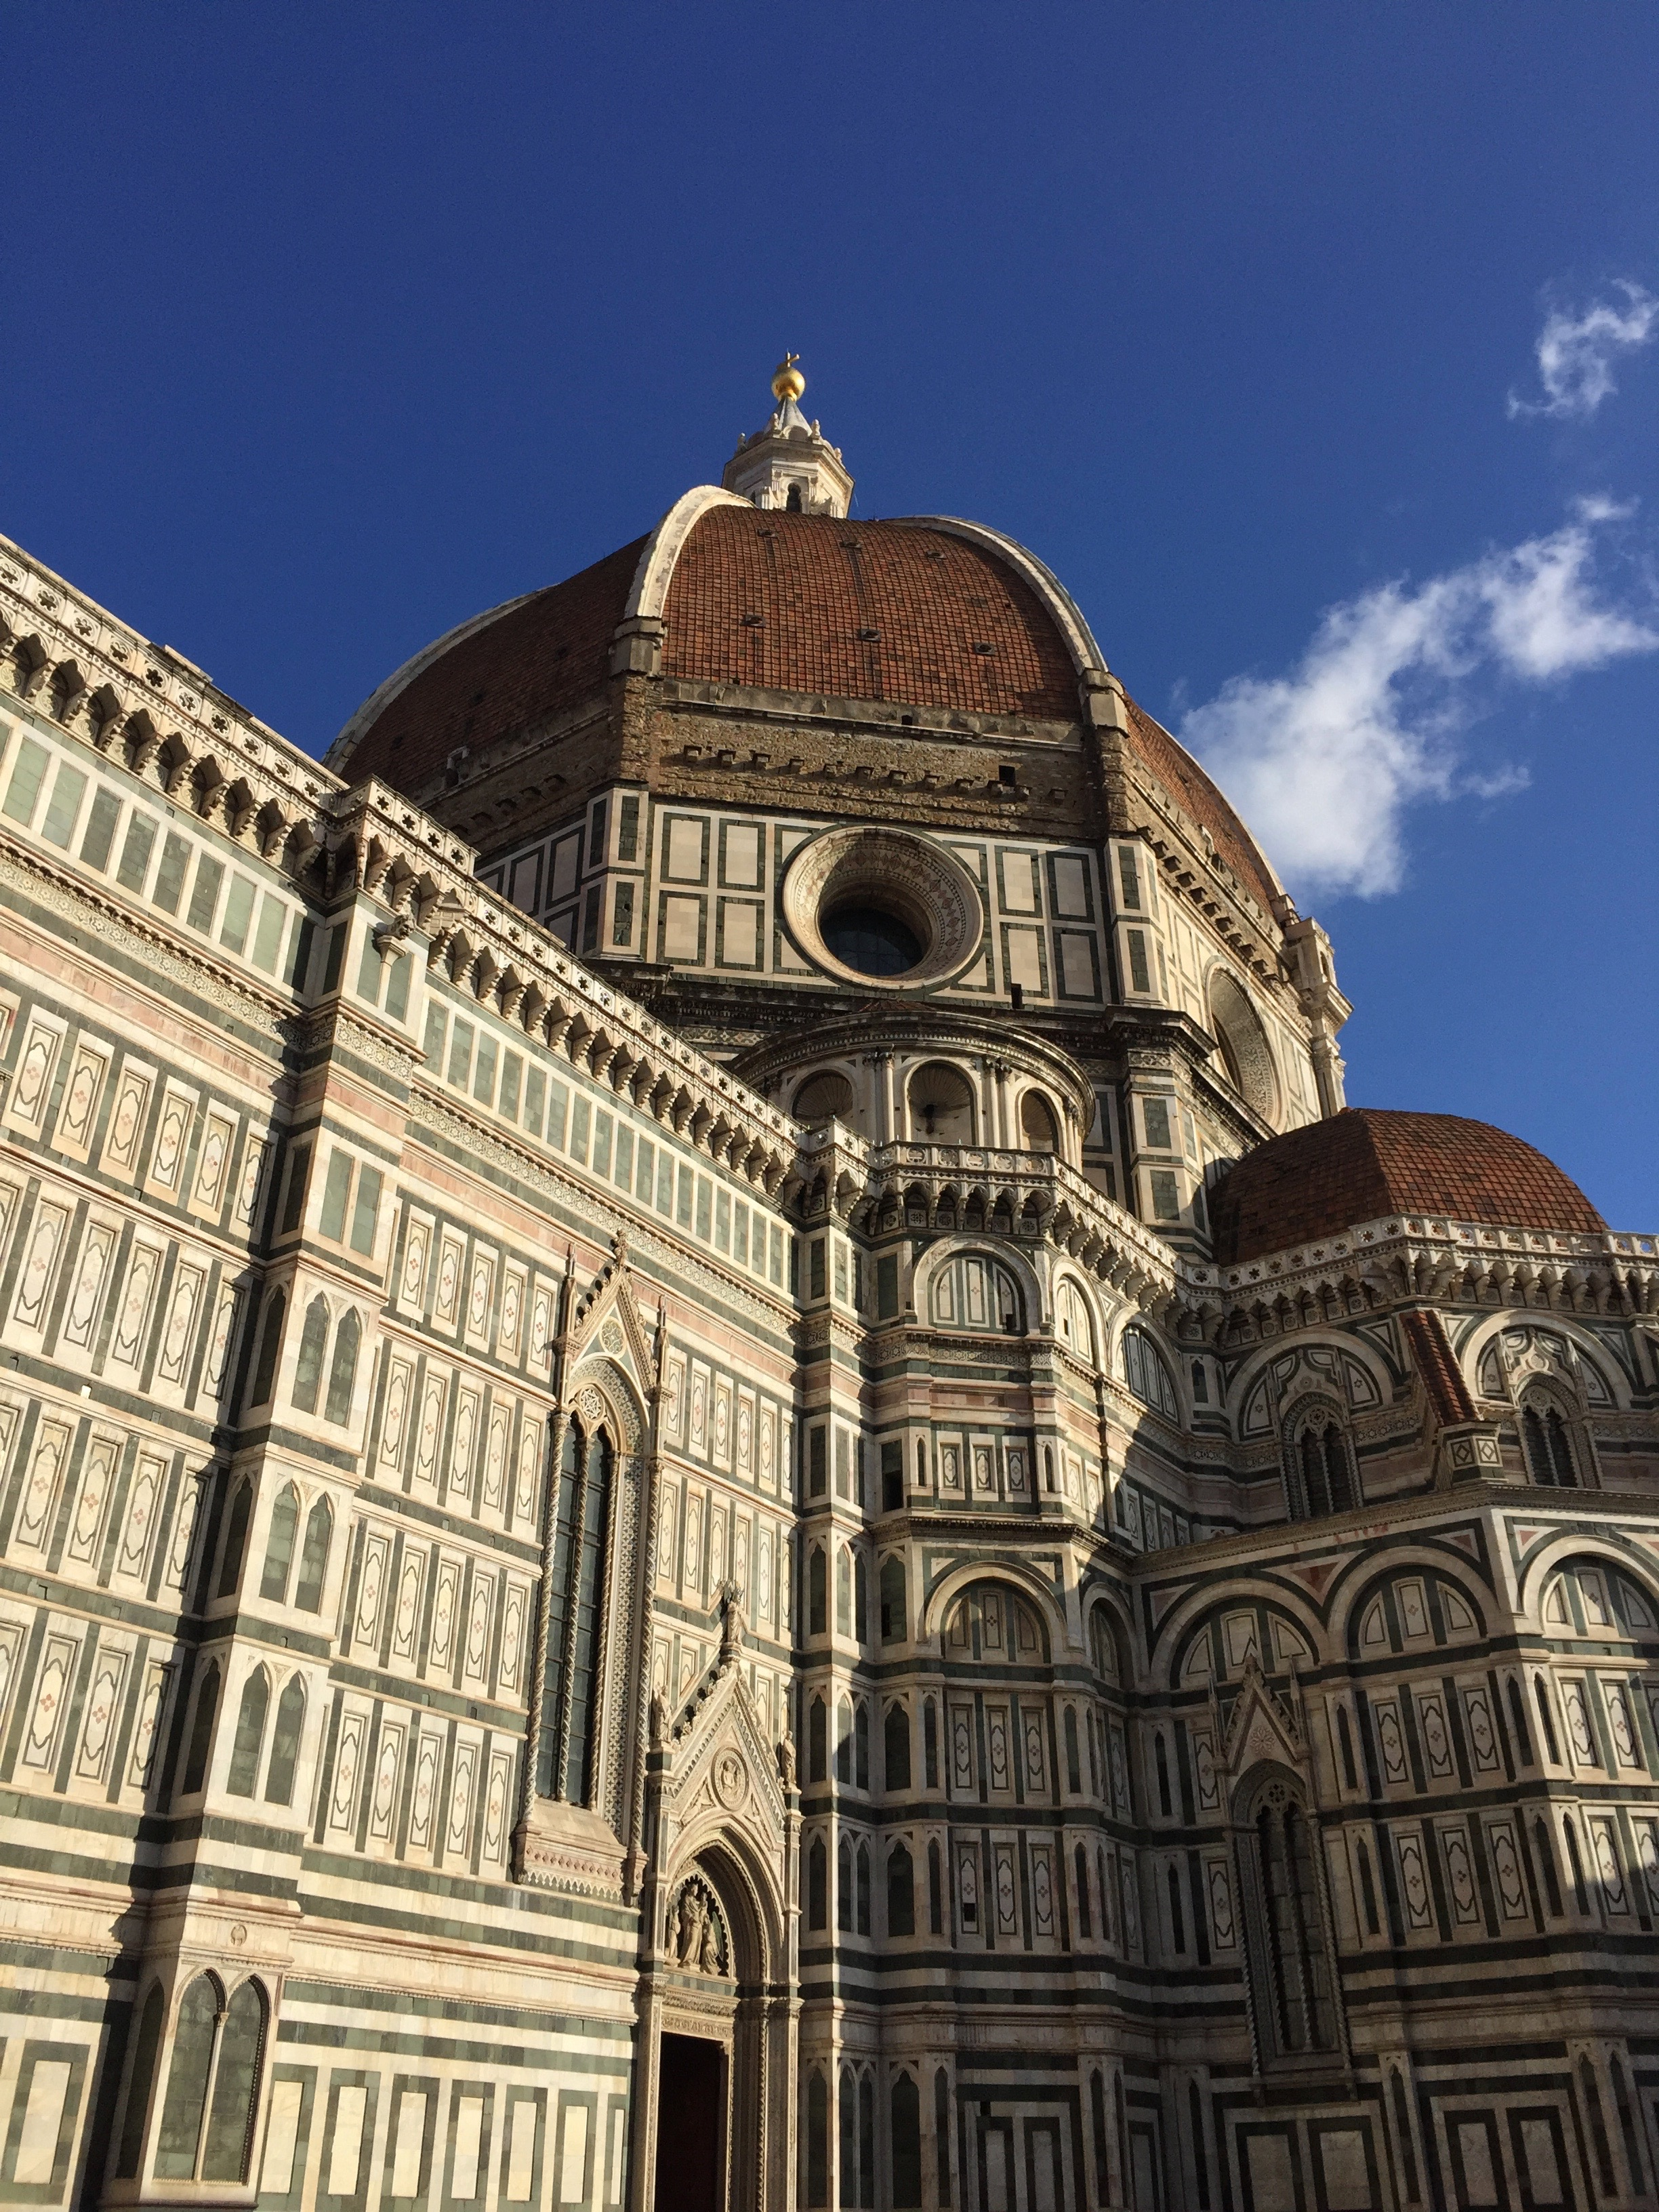 #MyArtTravels Tips: 3 Totally Instagram-worthy Italy Destinations